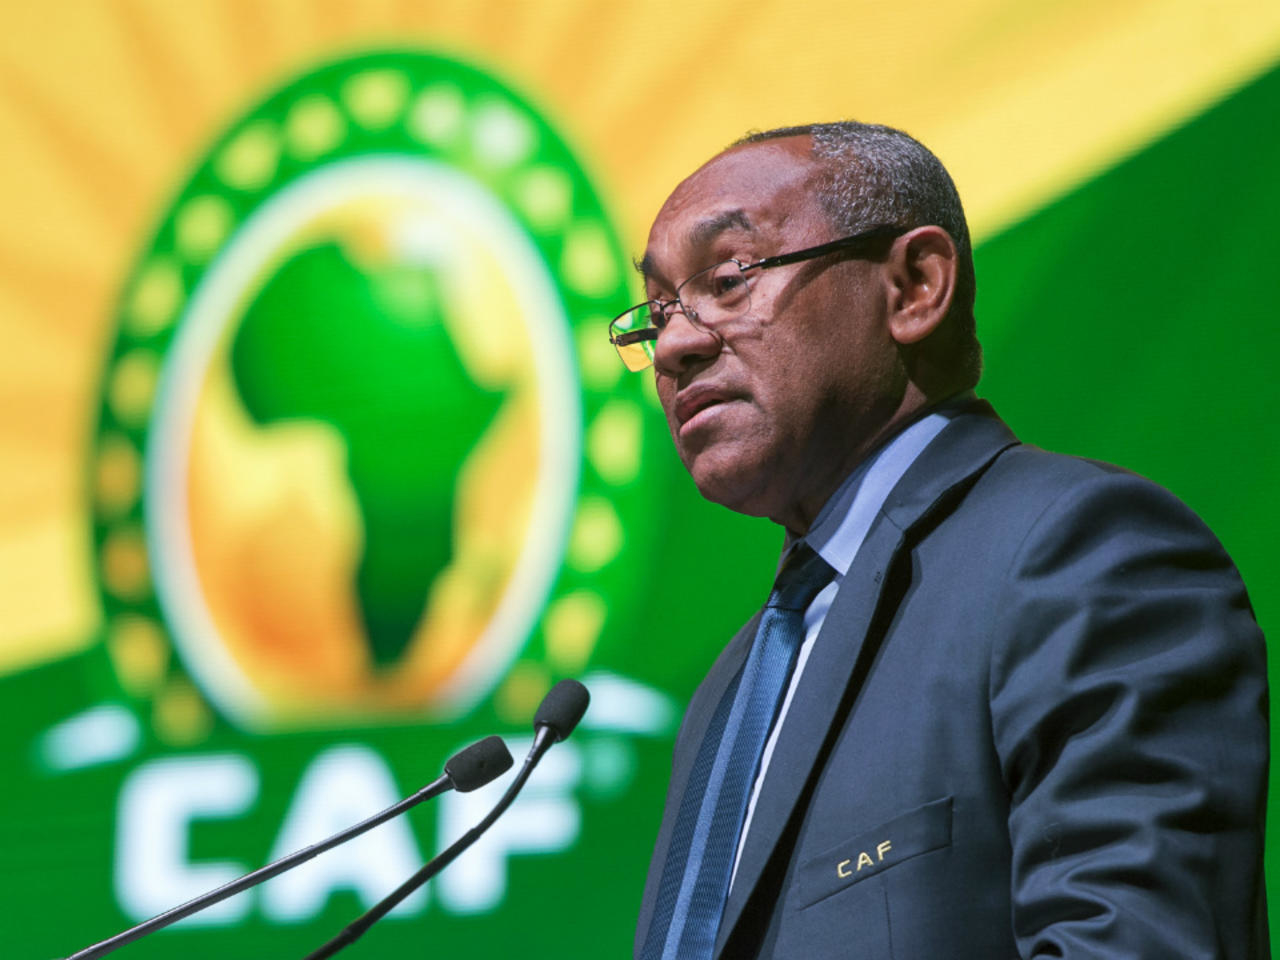 BREAKING: Caf boss Ahmad Ahmad banned 5 years for accepting gifts